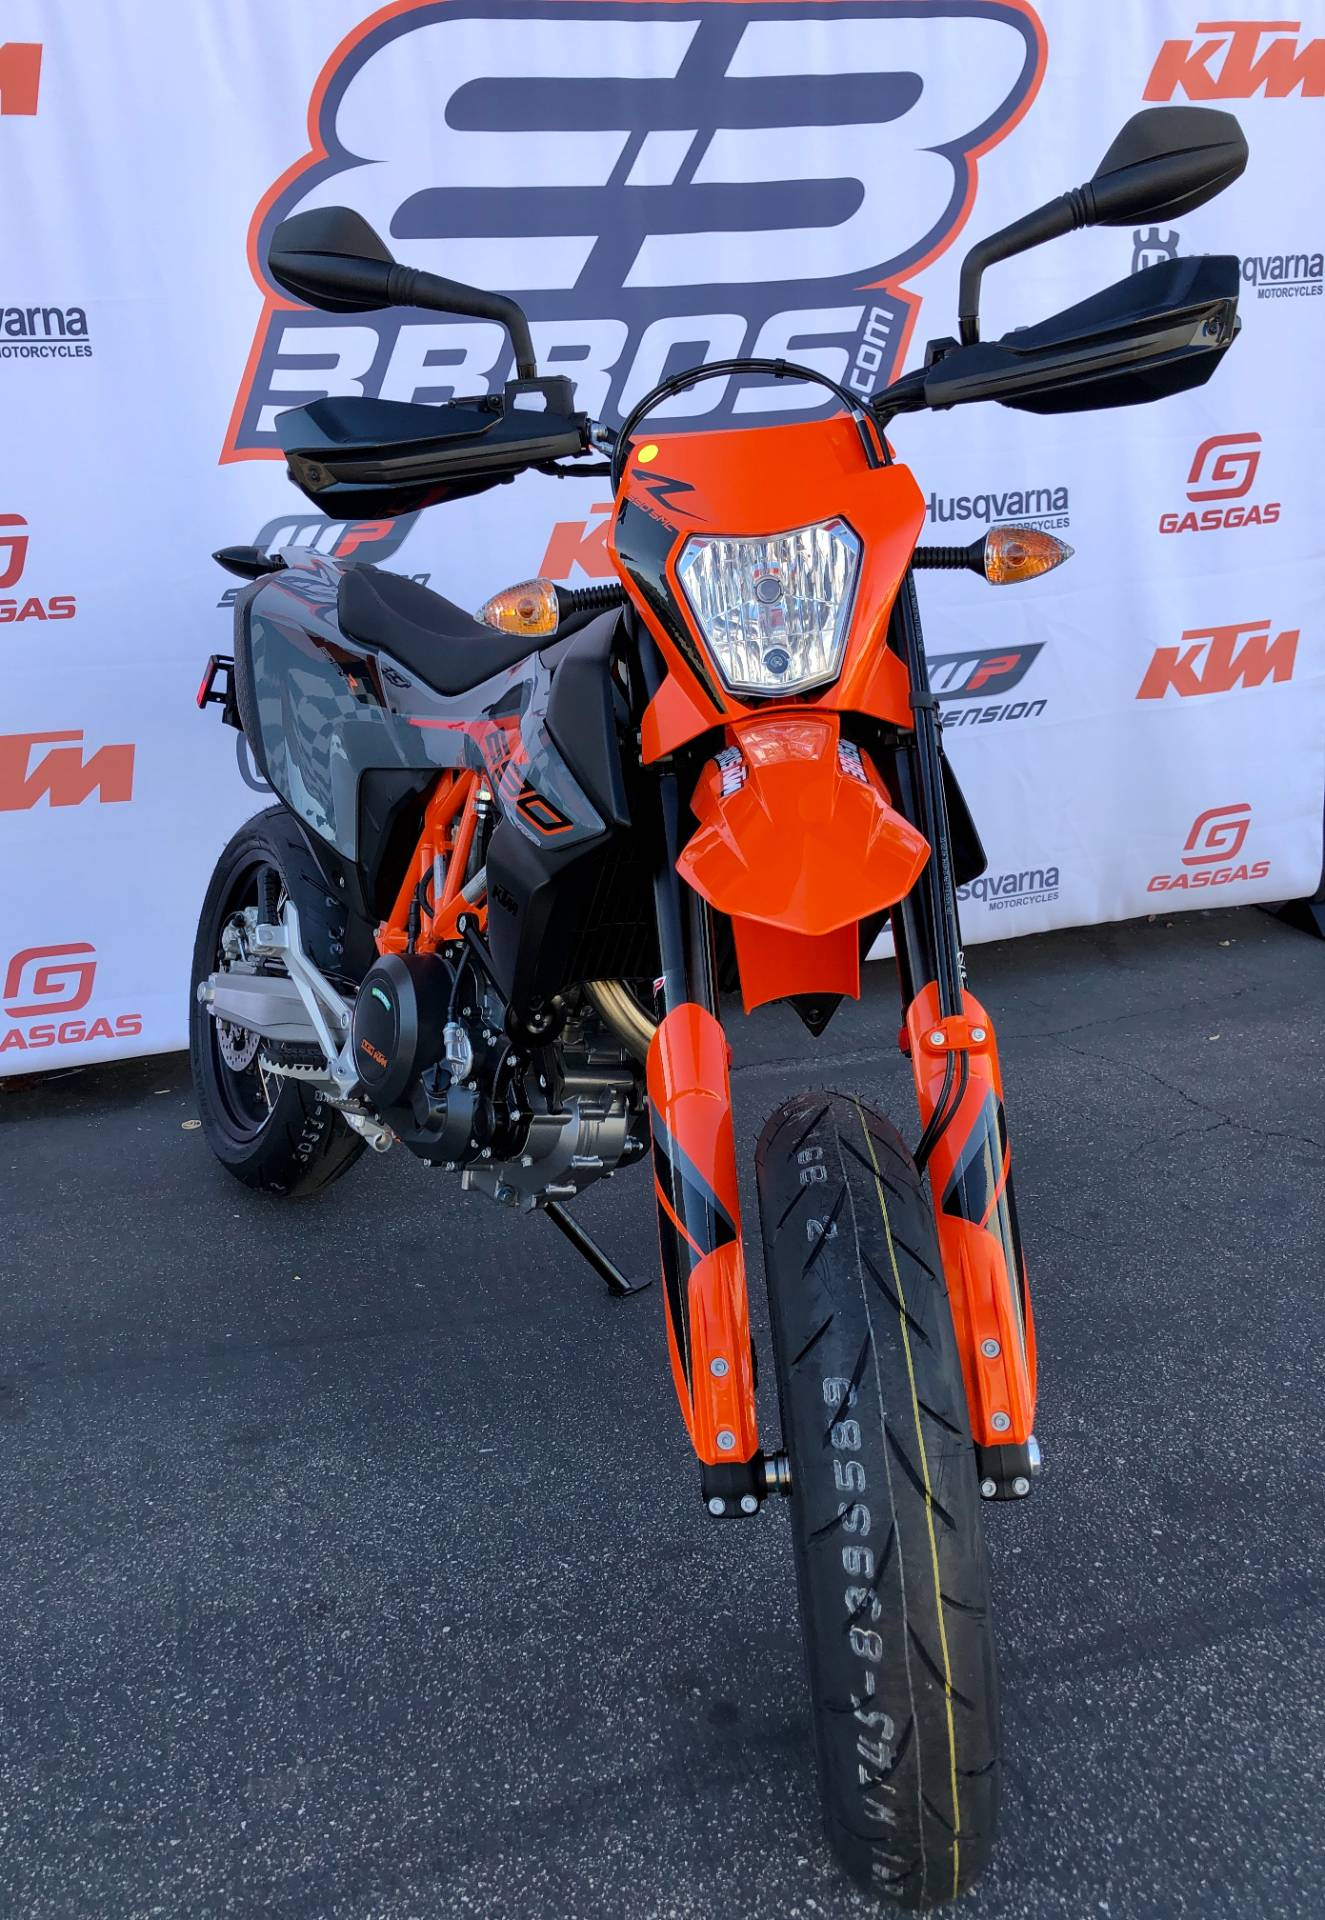 2021 KTM 690 SMC R in Costa Mesa, California - Photo 5